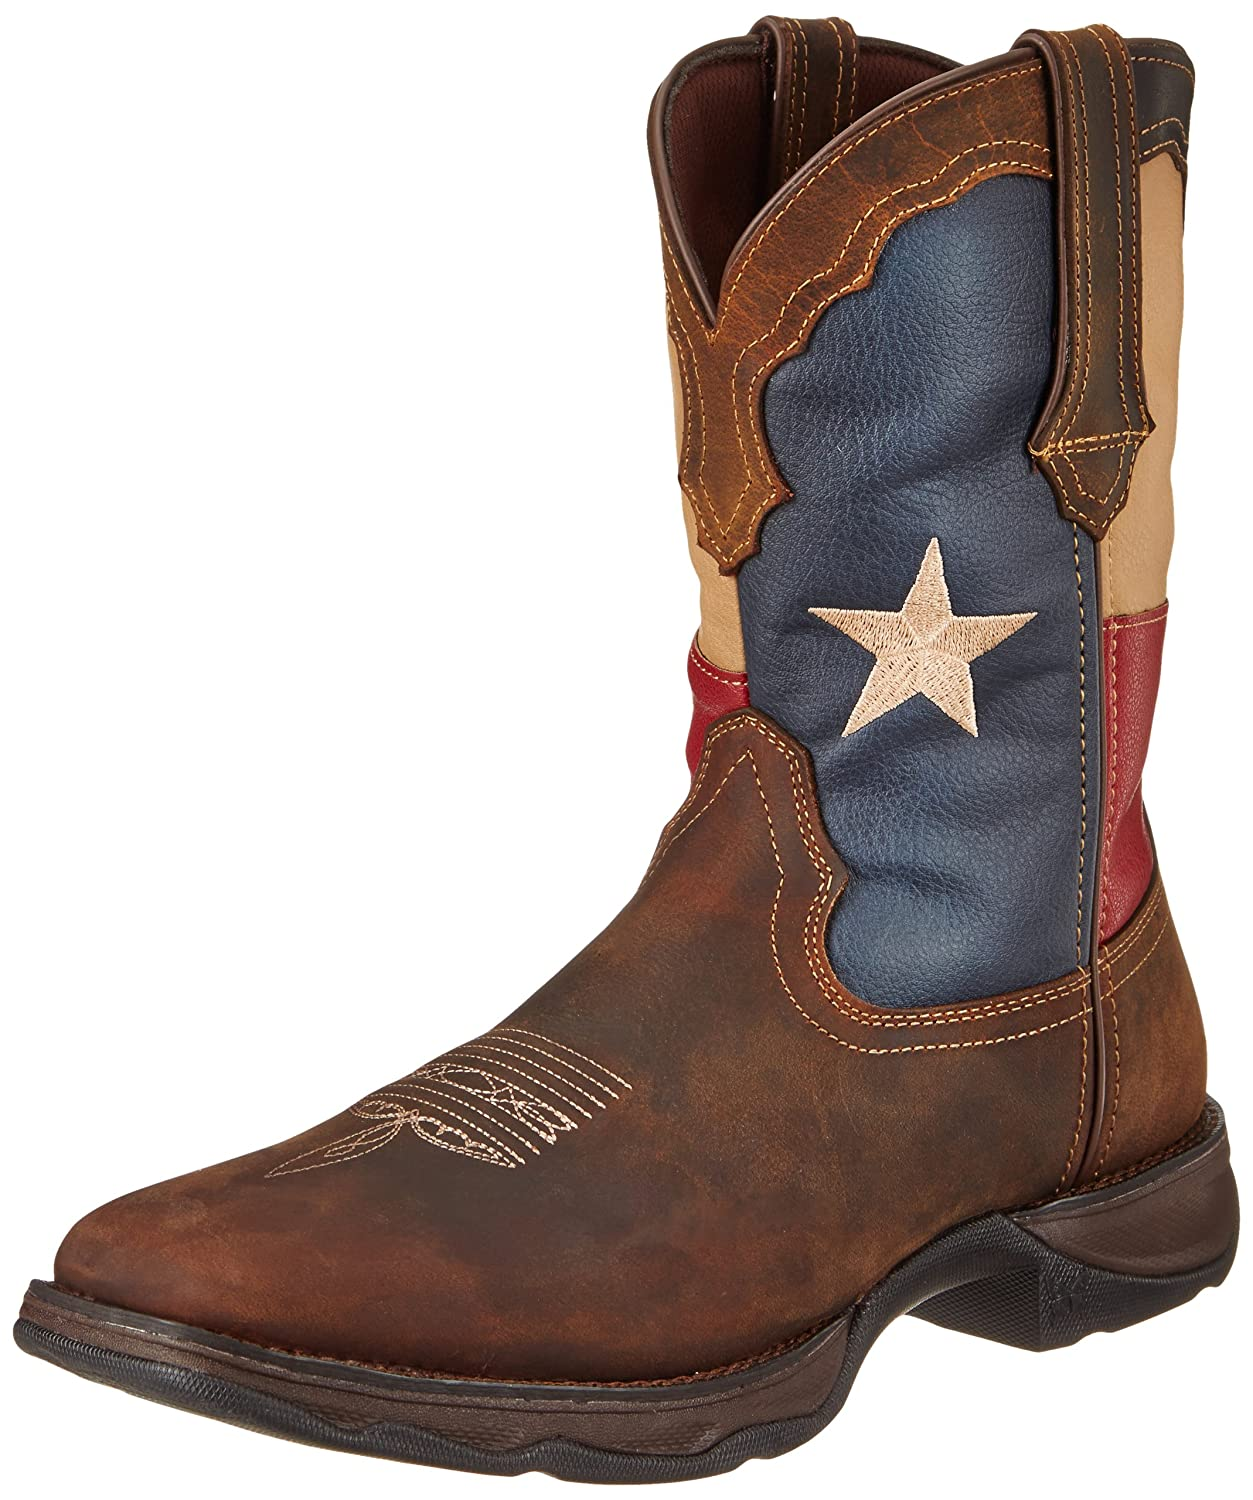 Durango Women's 10 Inch Flag RD3446 Western Boot B009V2XF4G 6 M US|Dark Brown/Texas Flag